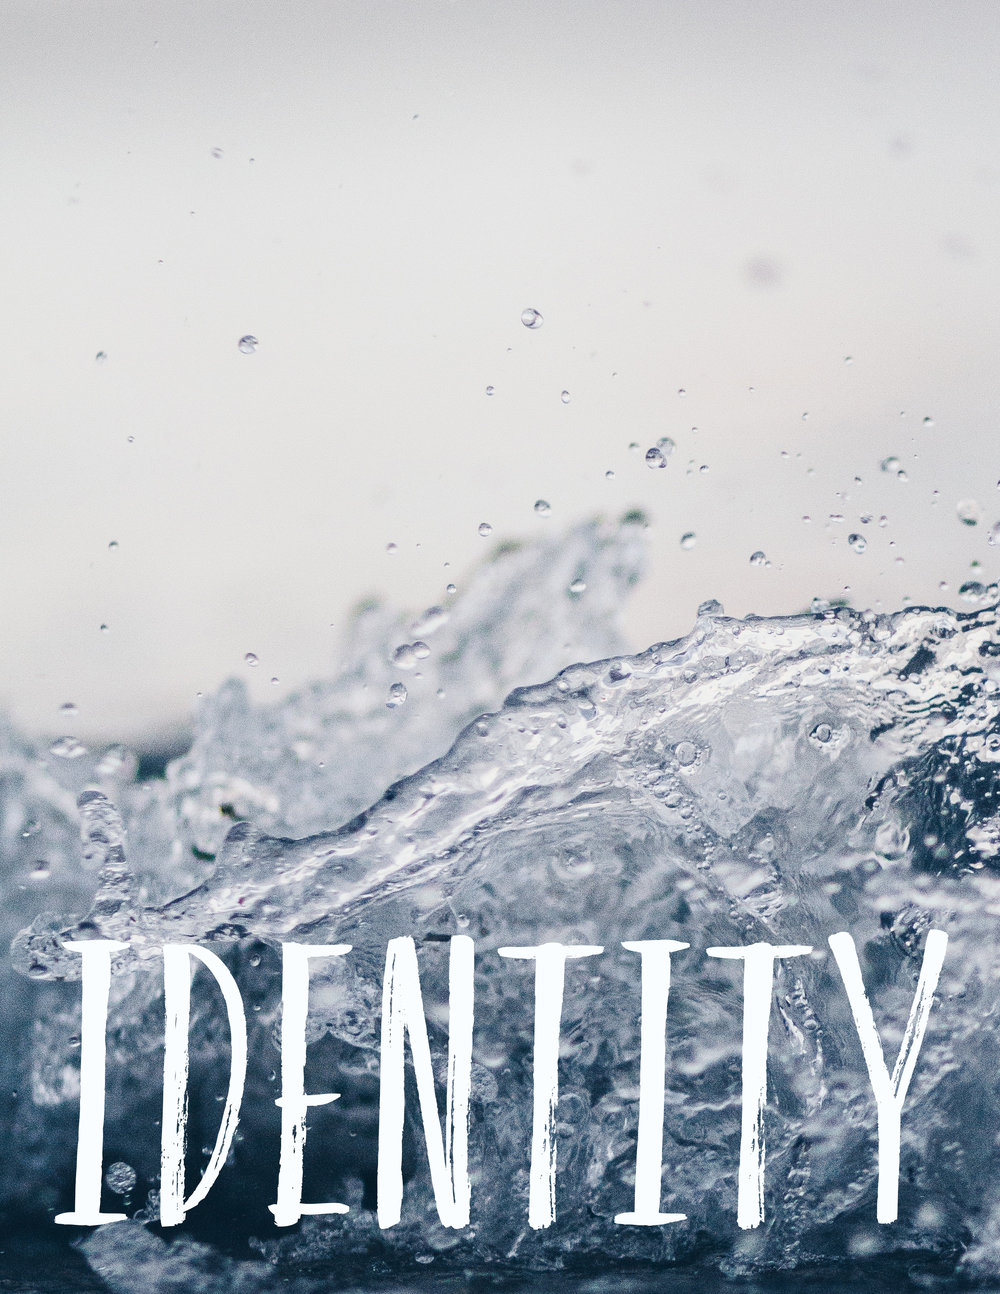 Our current study is focusing on our beautiful identity in Christ.